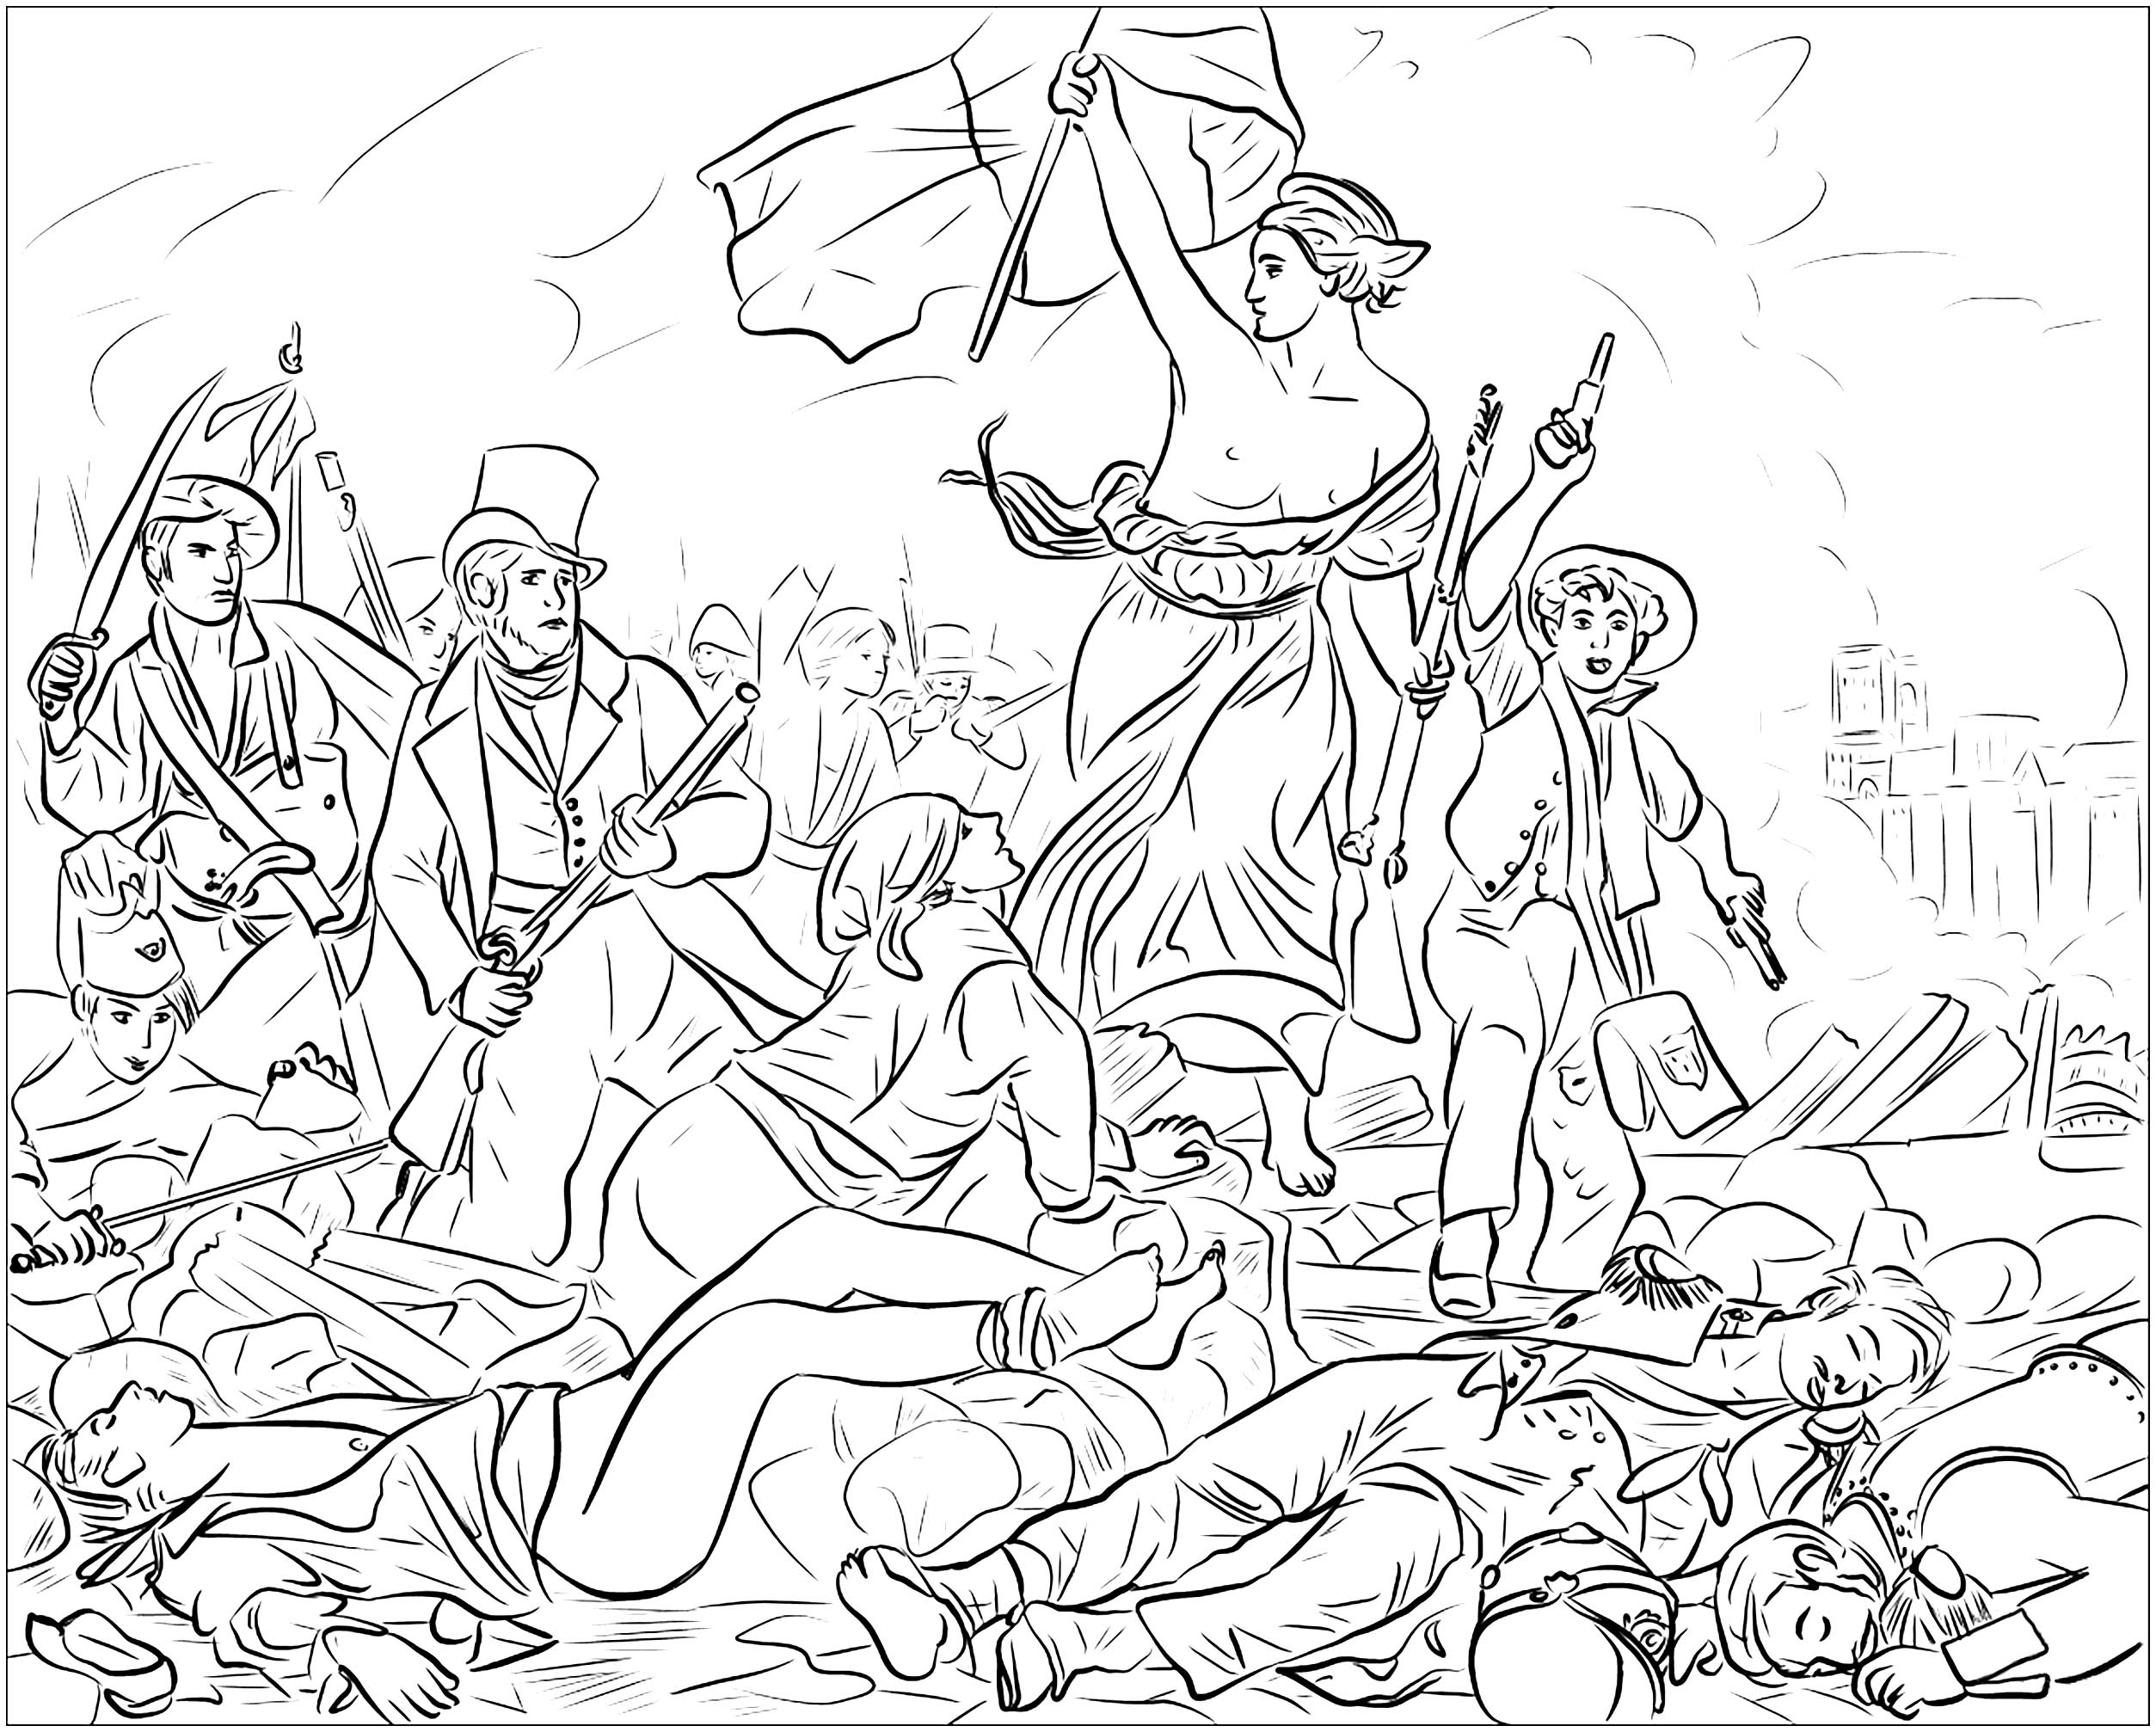 Coloring page created from the famous painting commemorating the July Revolution of 1830 in France, by Eugène Delacroix : Liberty Leading the People